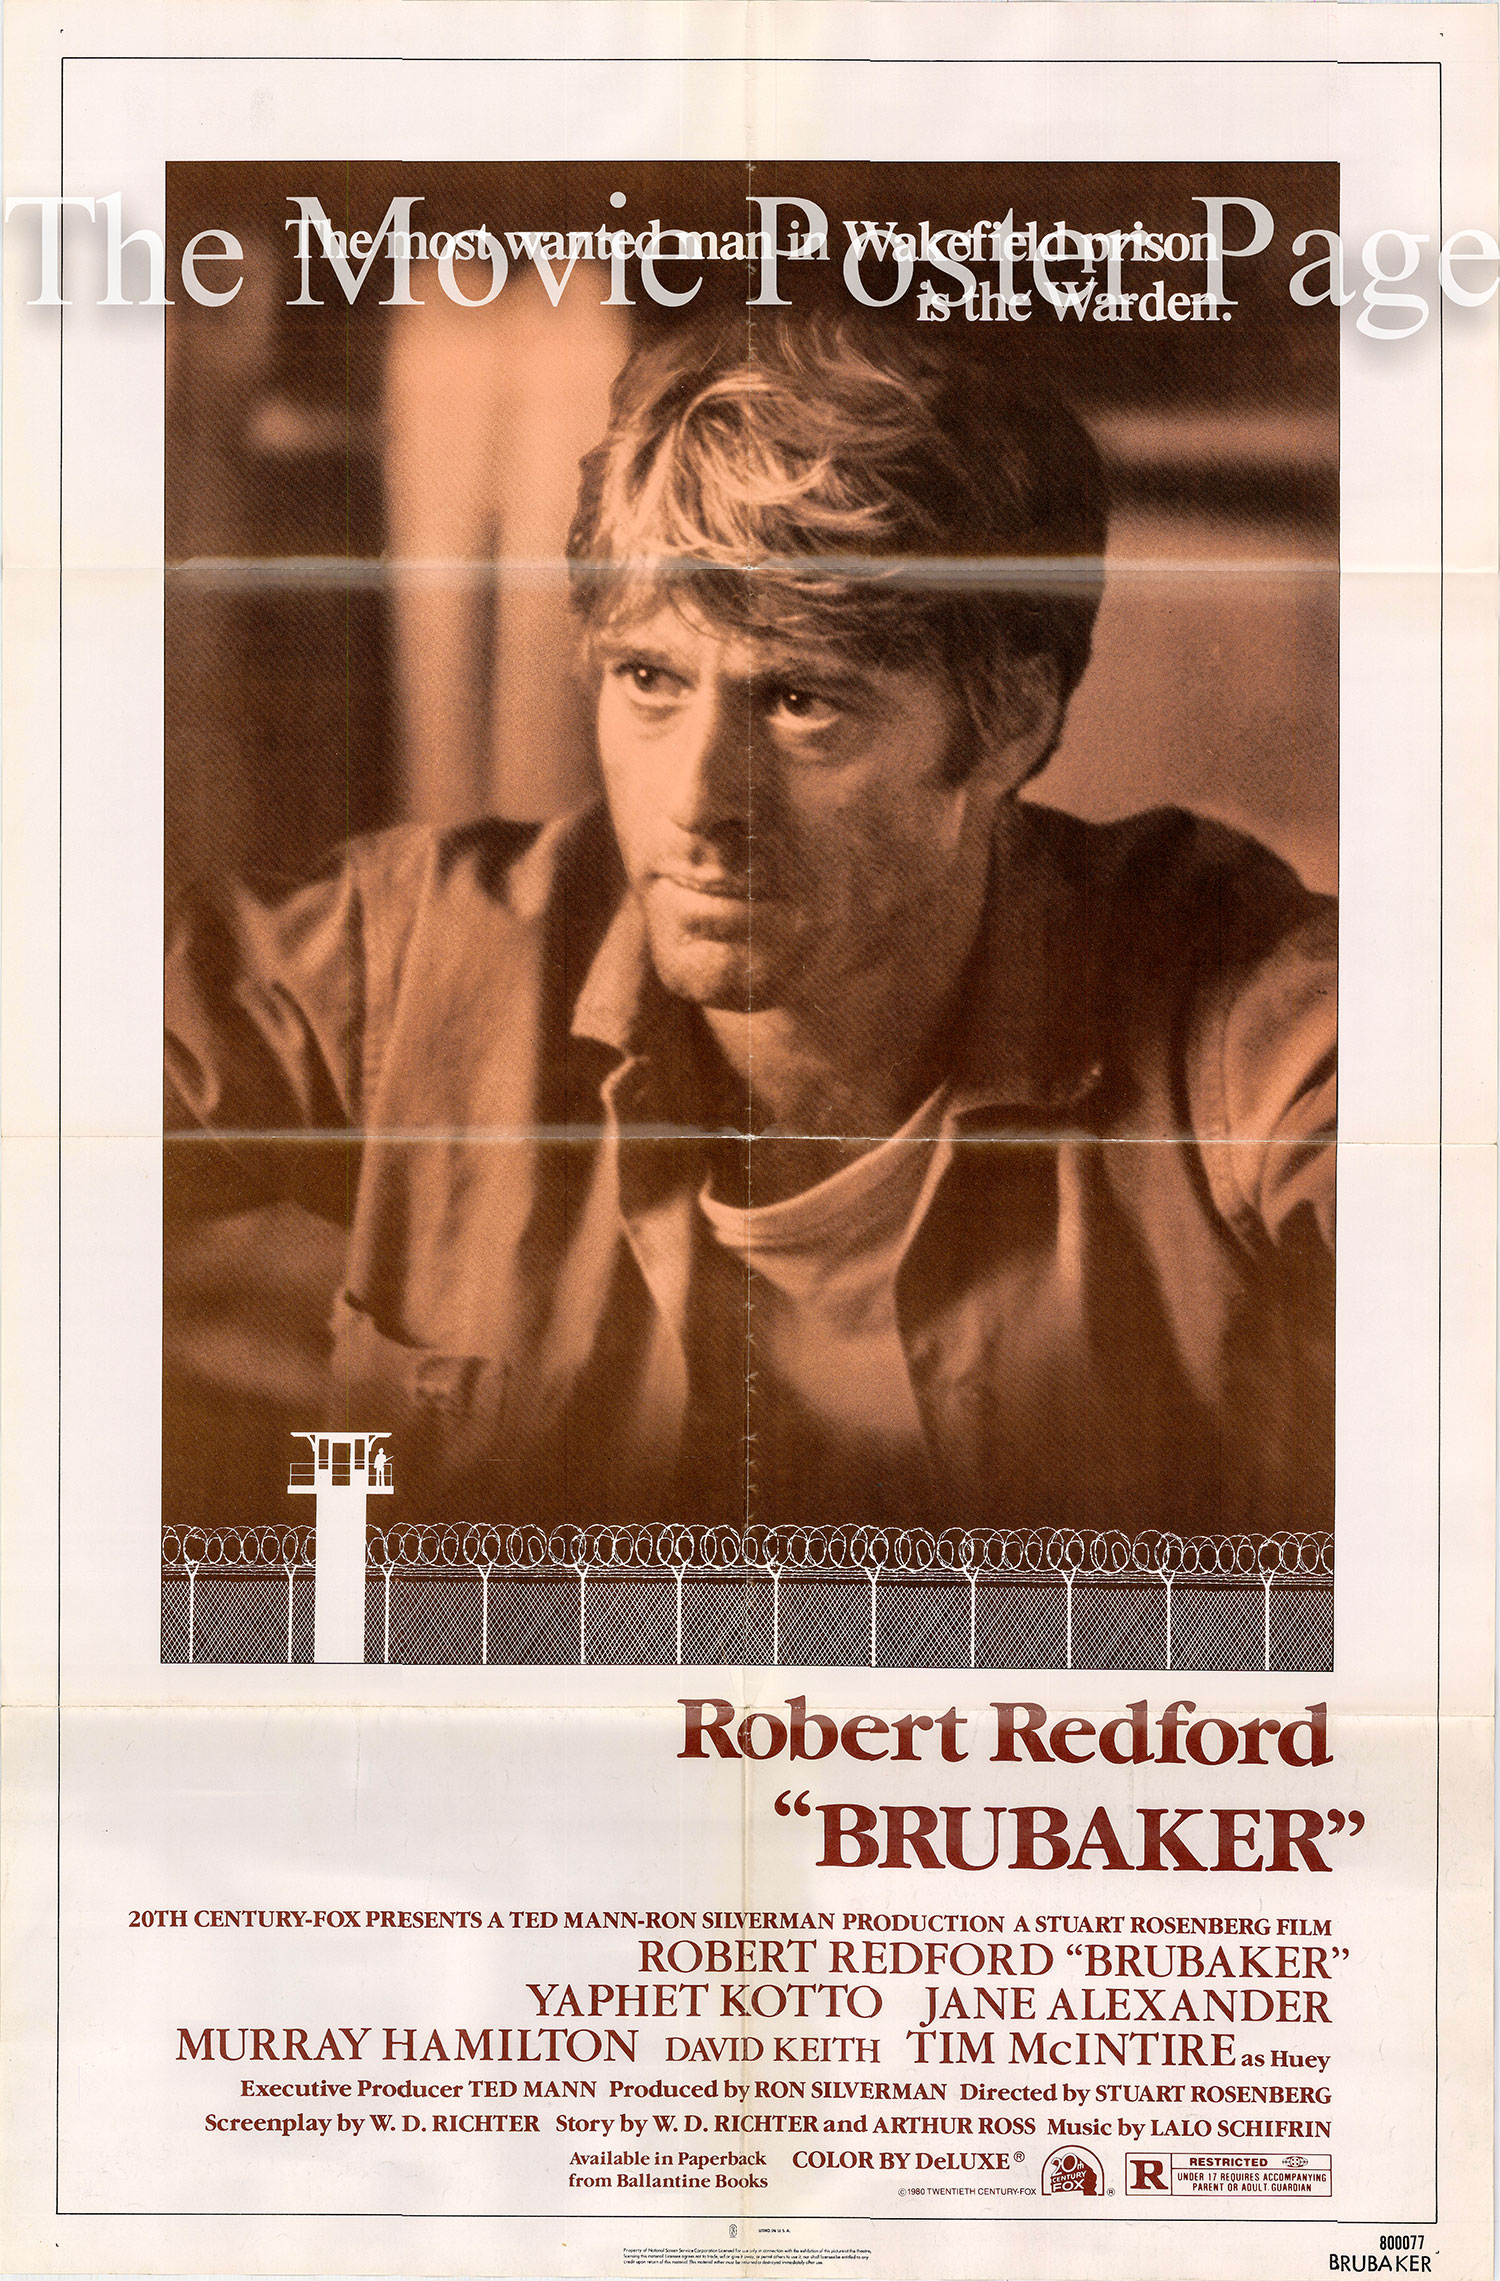 Pictured is a US one-sheet promotional poster for the 1980 Stuart Rosenberg film Brubaker starring Robert Redford.